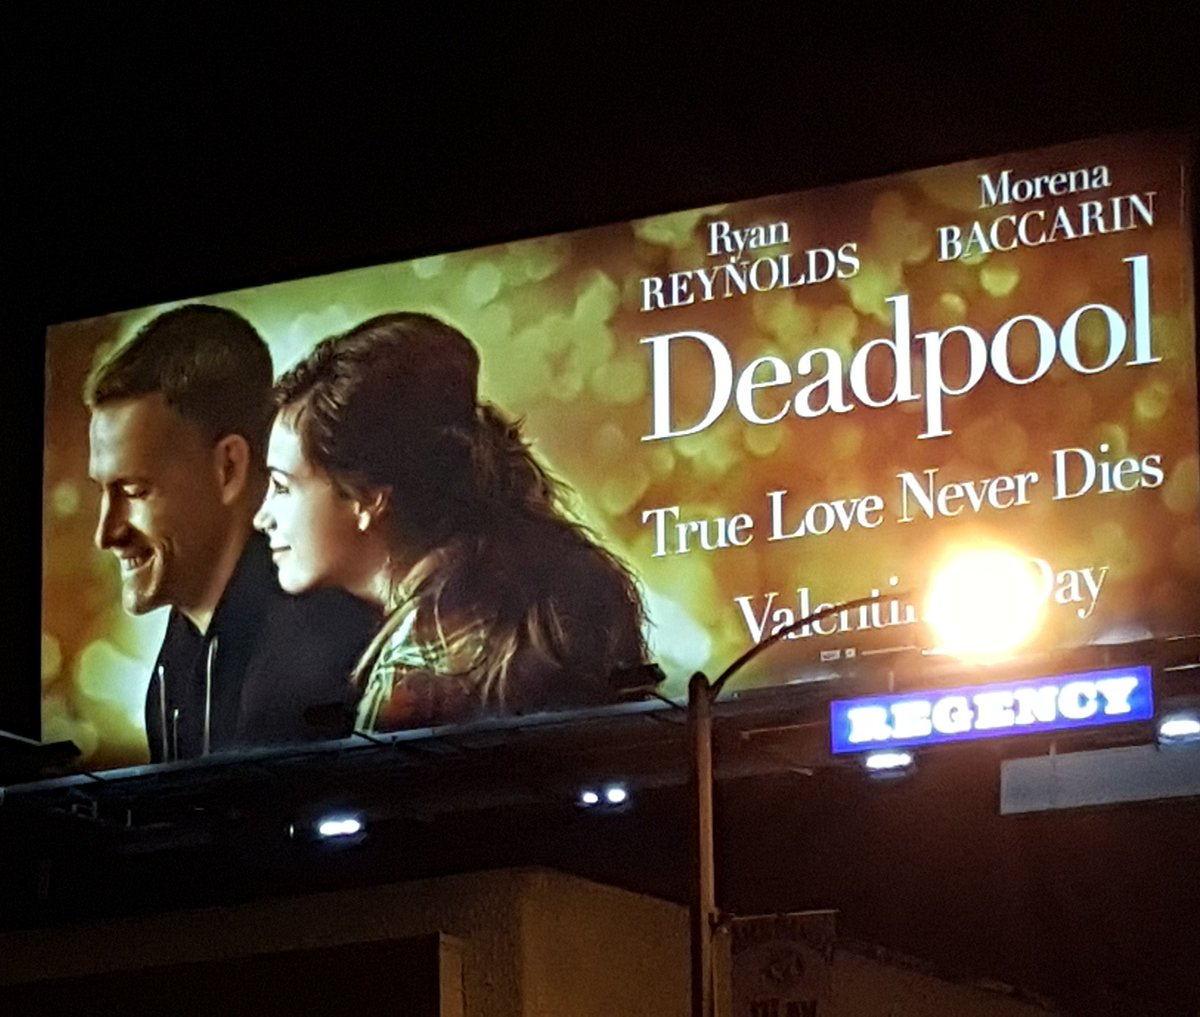 Aww, this looks so tender and sweet. Perfect antidote to the usual violent fare. Go @VancityReynolds! #datenight https://t.co/bkSeC2lfrJ